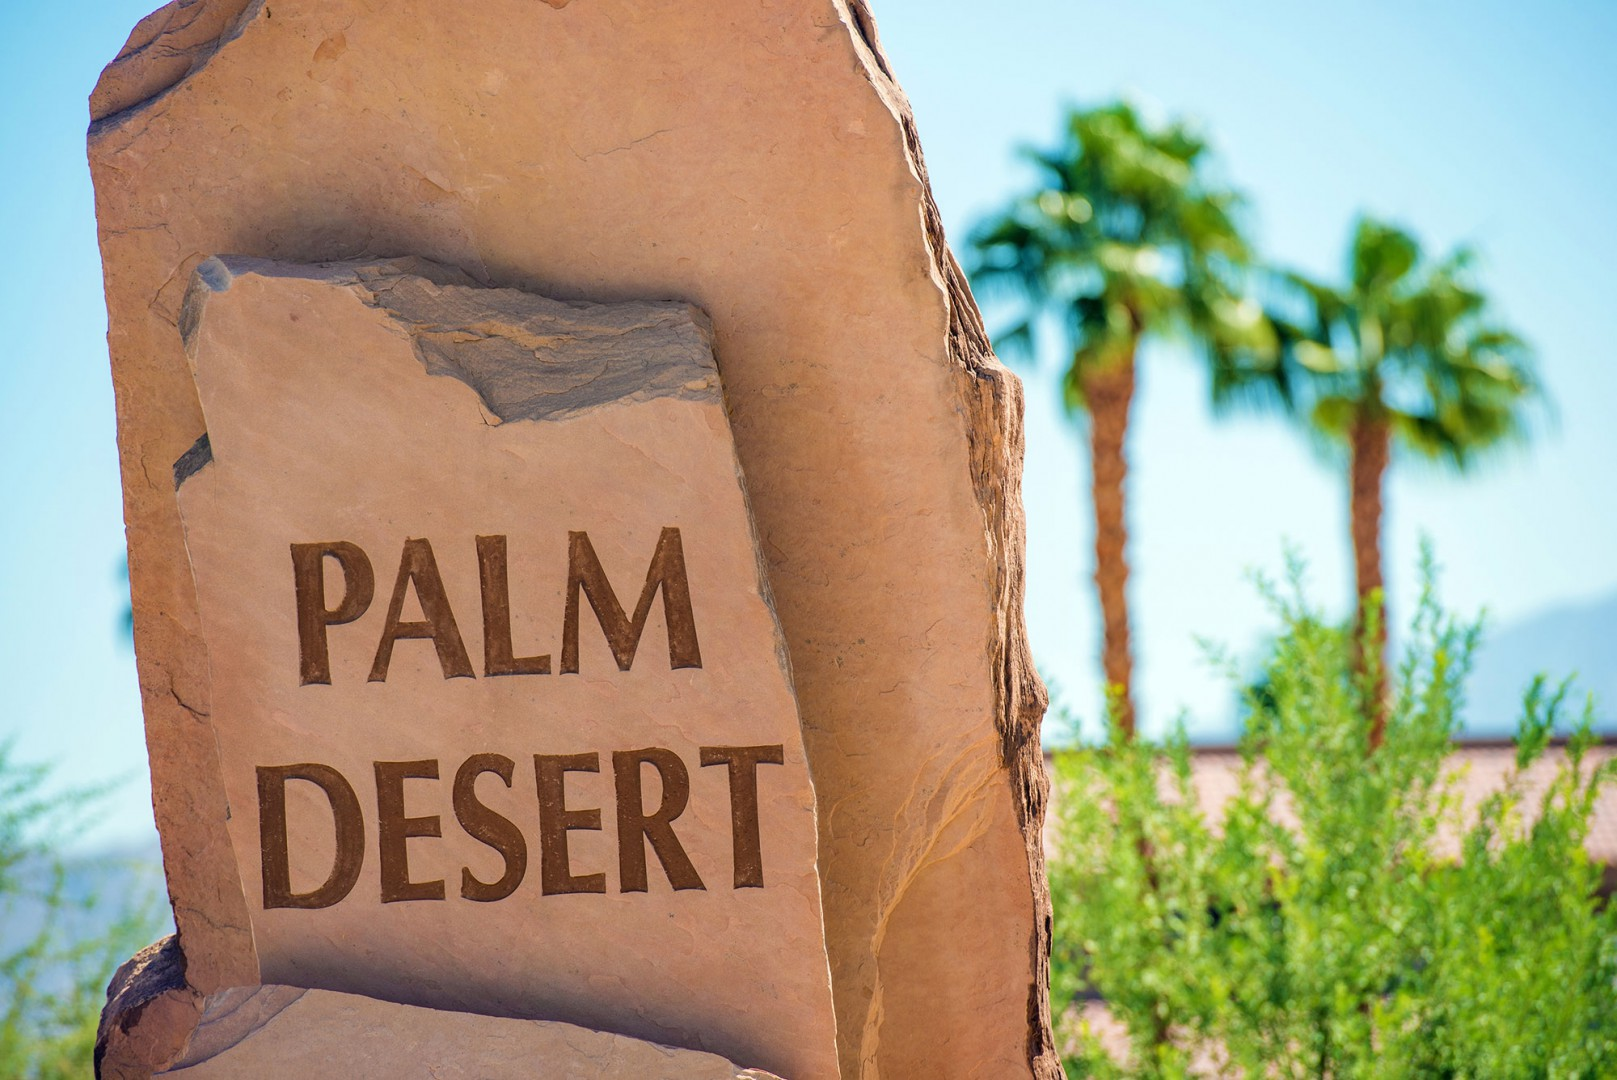 Stone signage located in Palm Desert County California